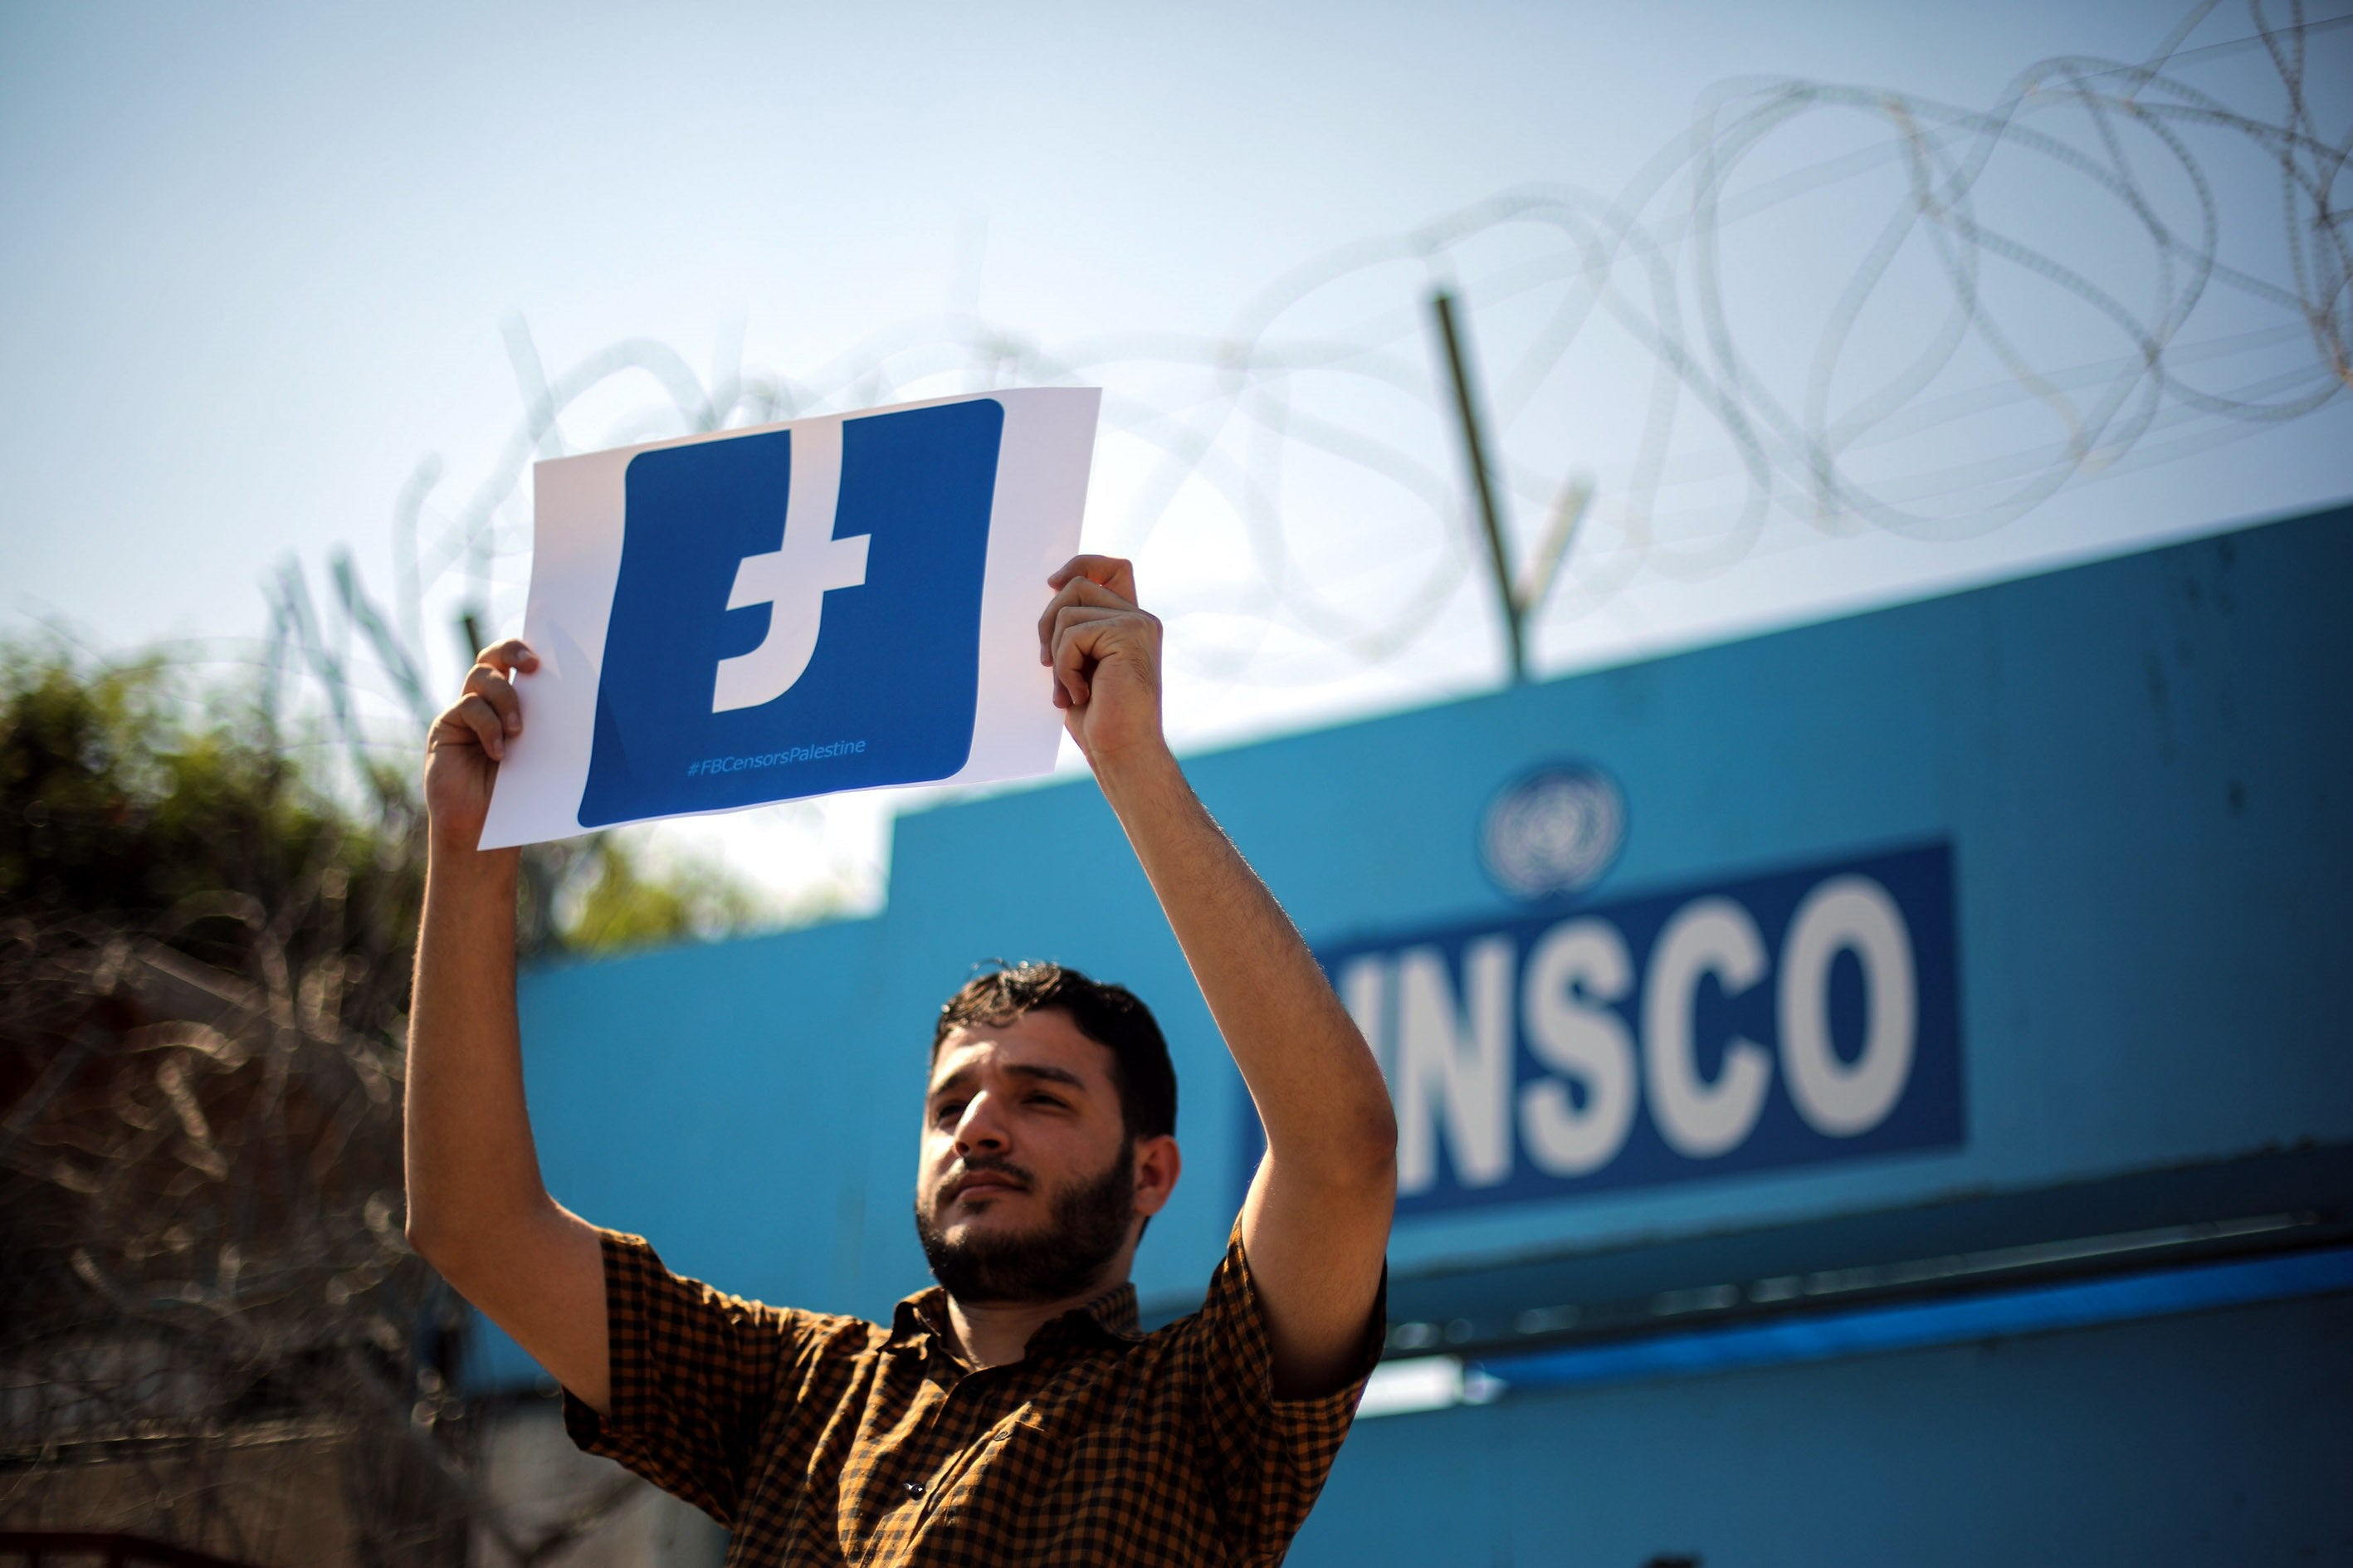 Israel/Palestine: Facebook Censors Discussion of Rights Issues